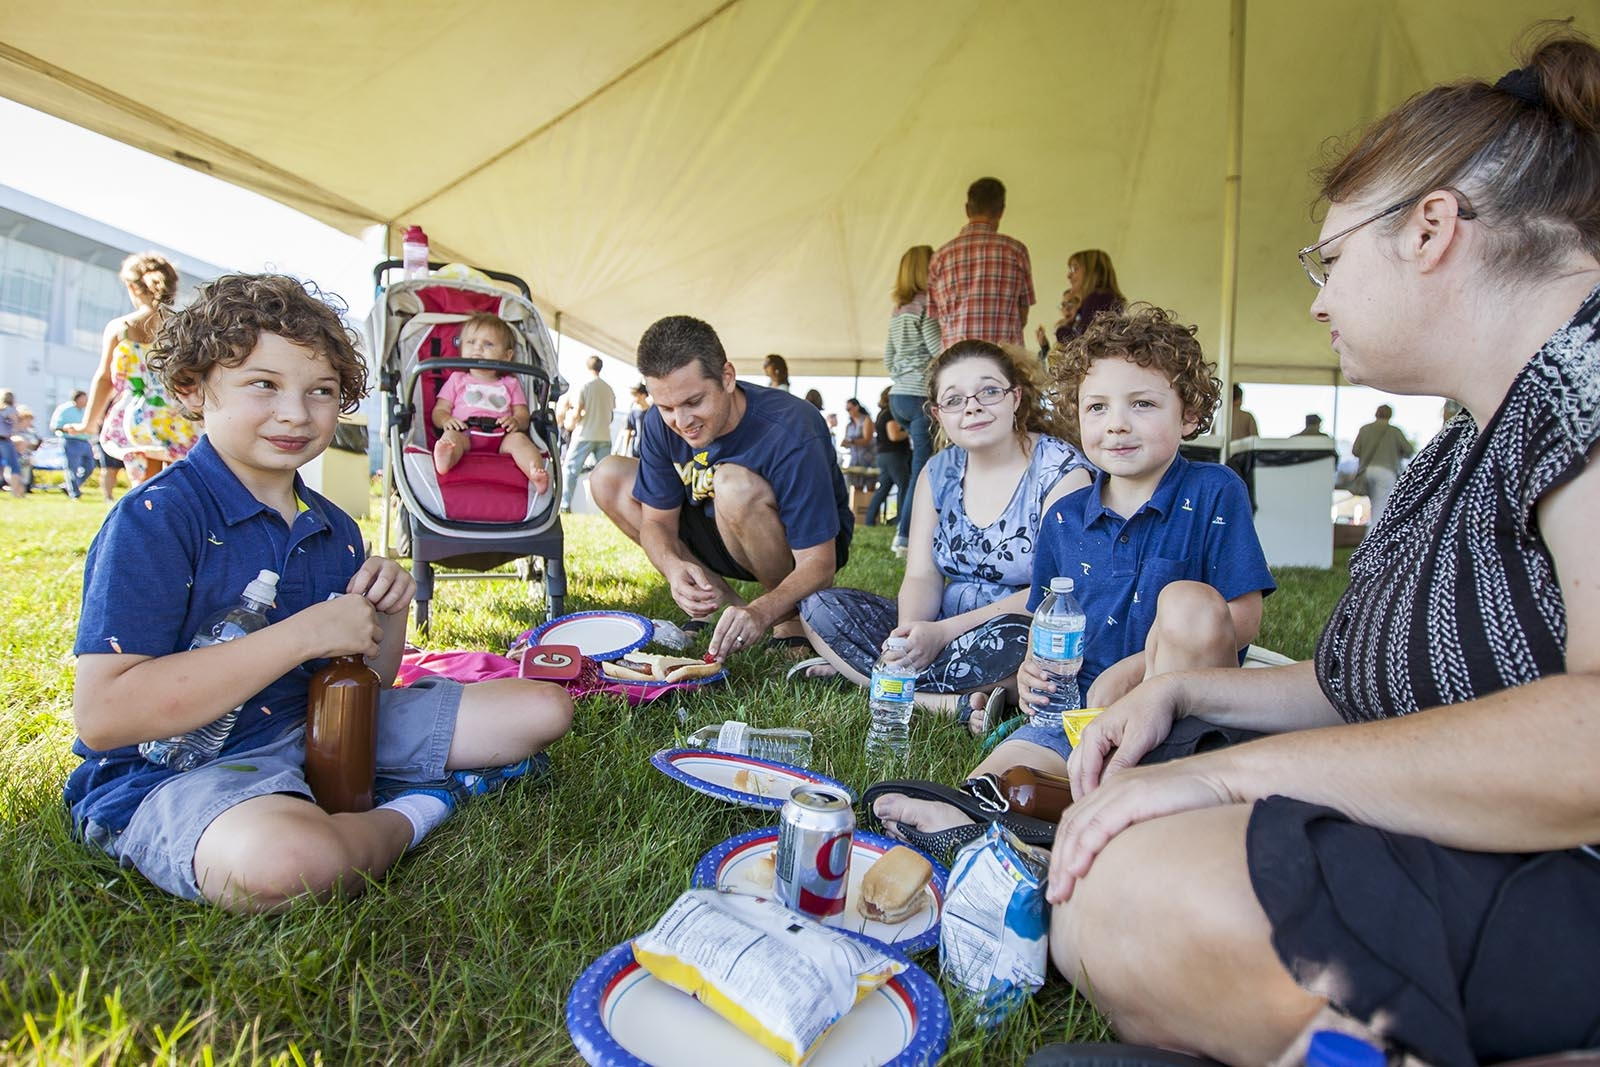 Picnic & Fireworks on the Lawn (146th Street)